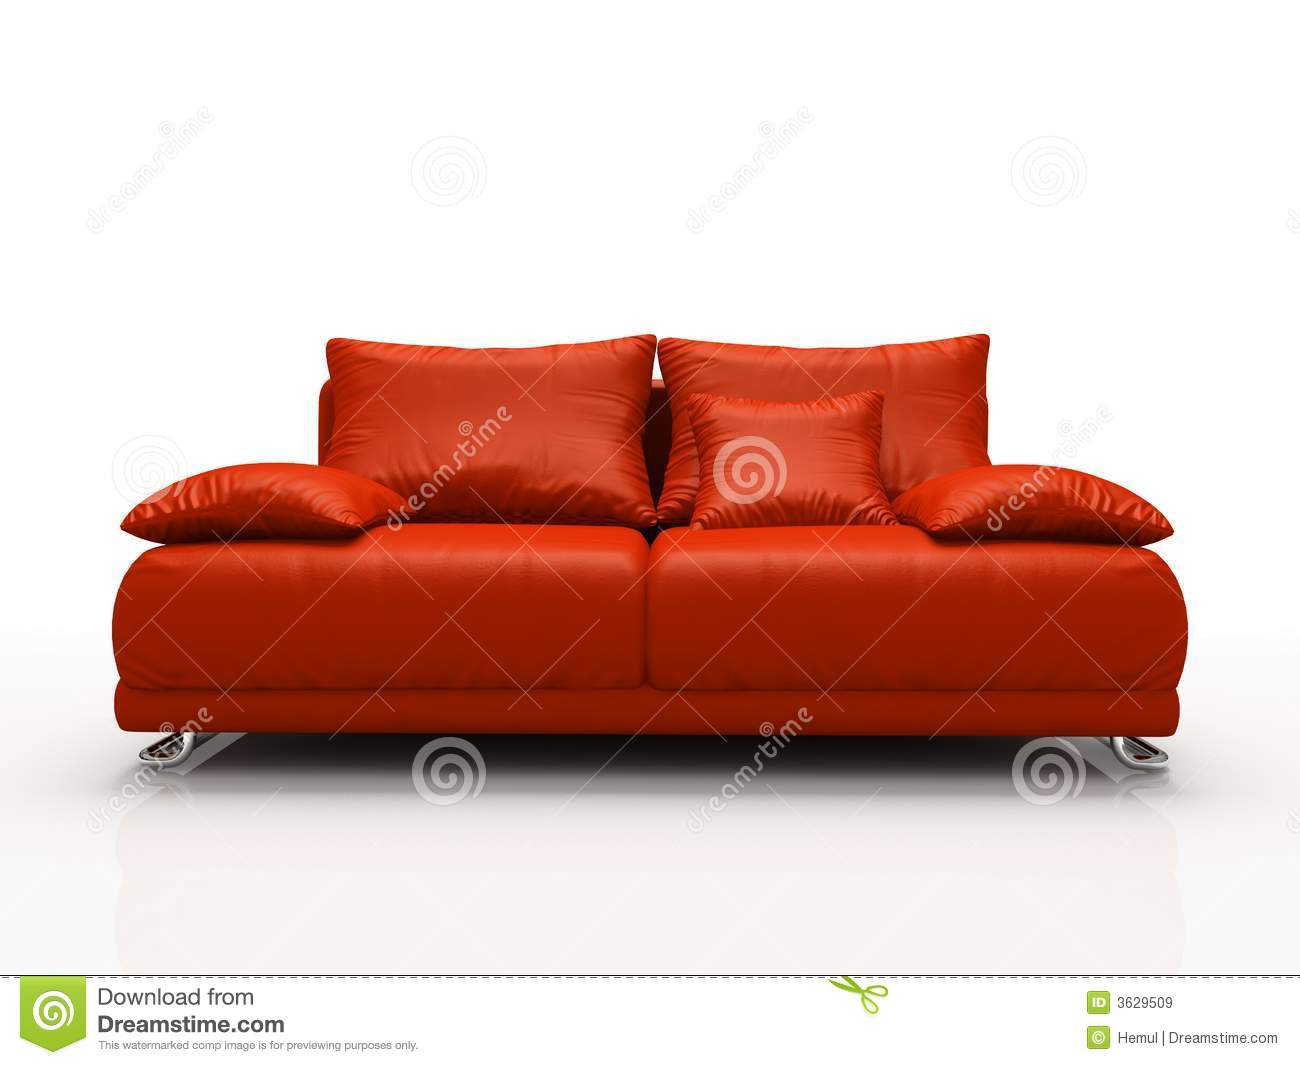 leather red sofa futon sleeper mattress the gallery for gt wine bottle background